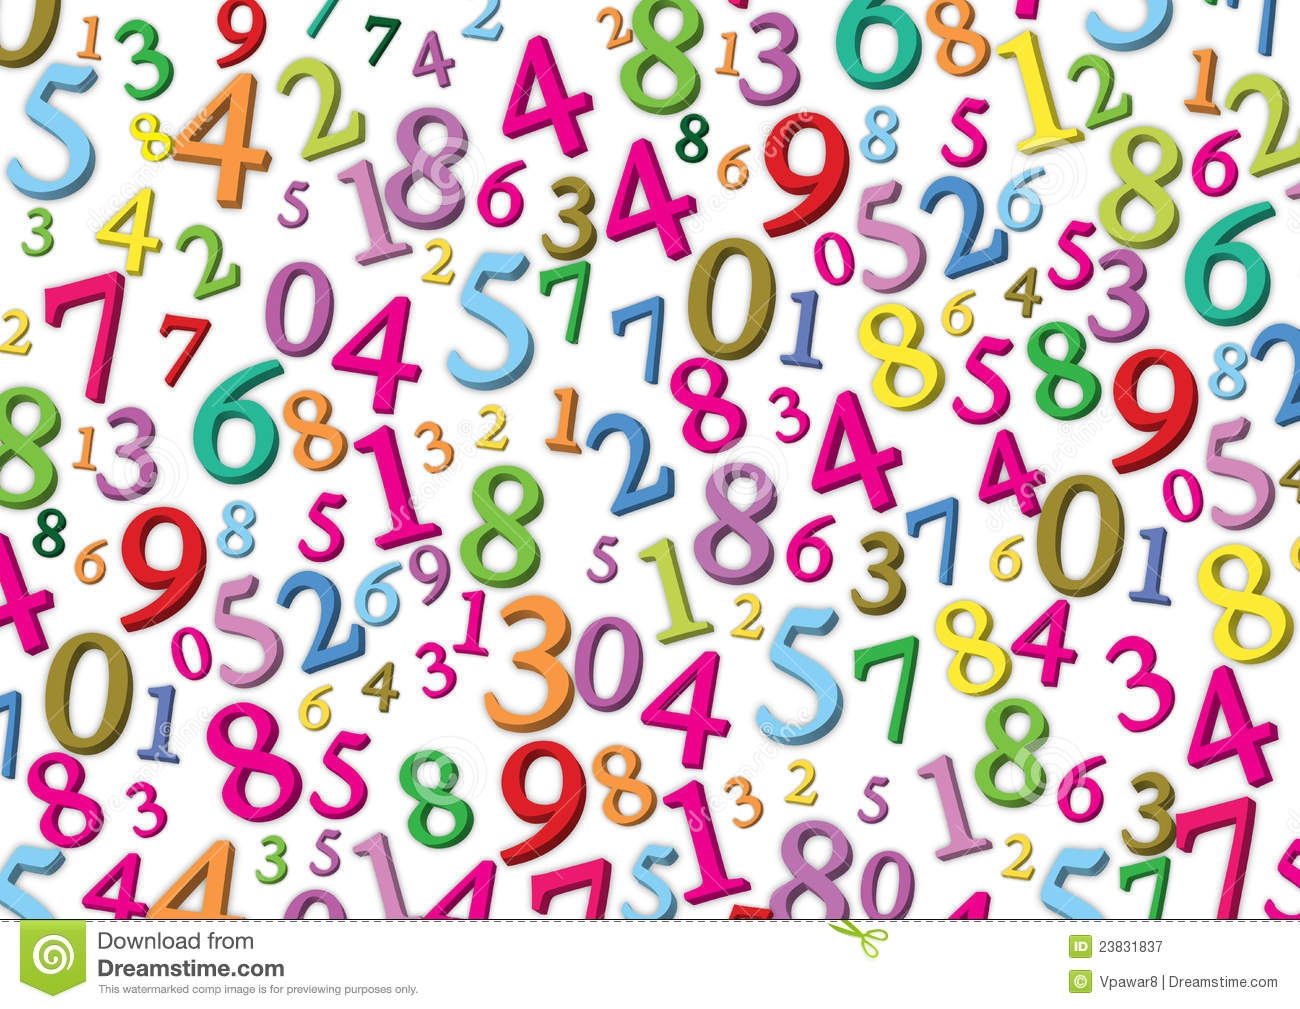 Number clipart number wallpaper Com clipartsgram Wallpaper Numbers Numbers